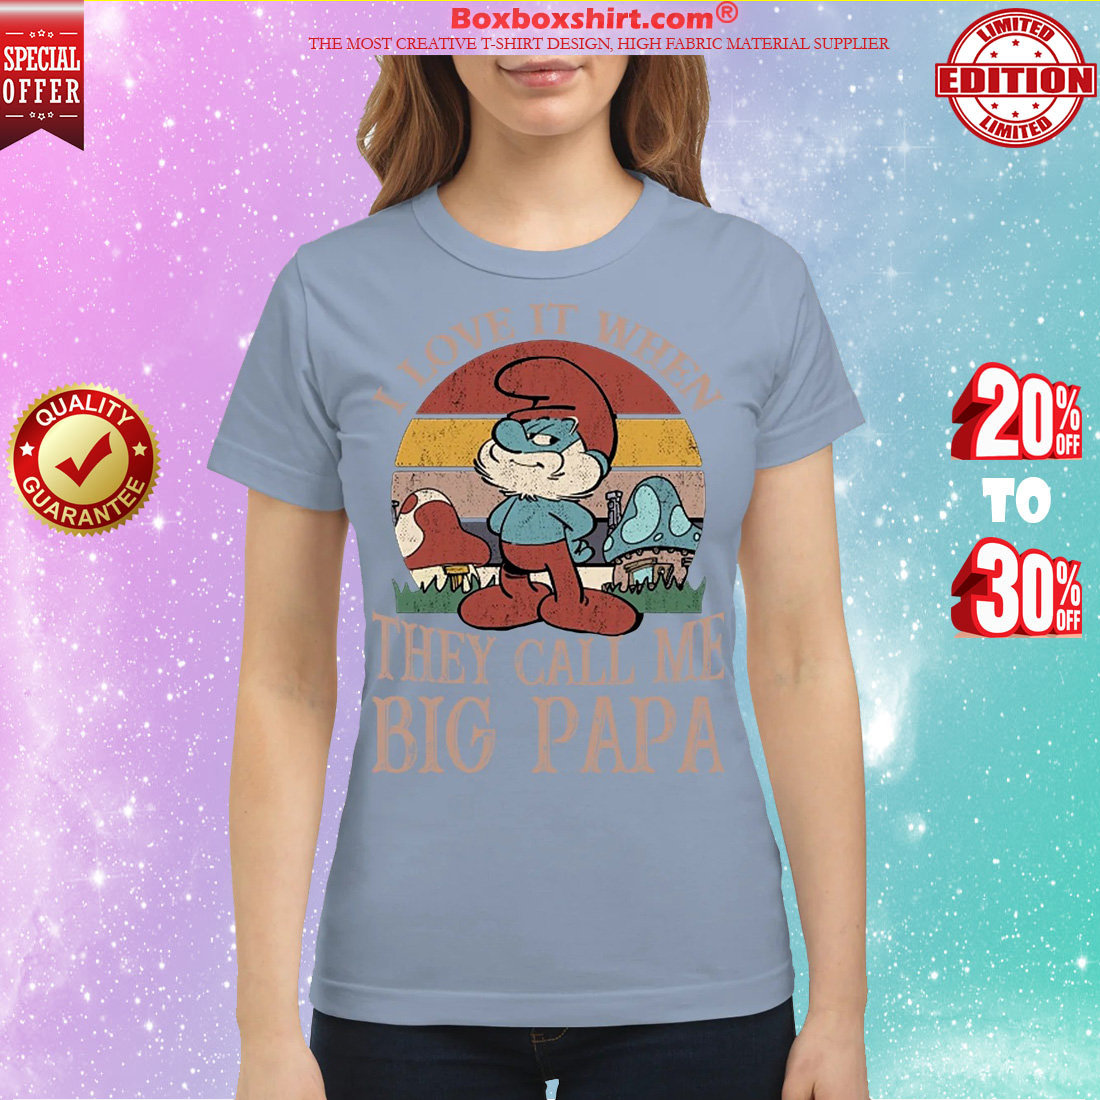 Smurf I love it when they call me big papa classic shirt